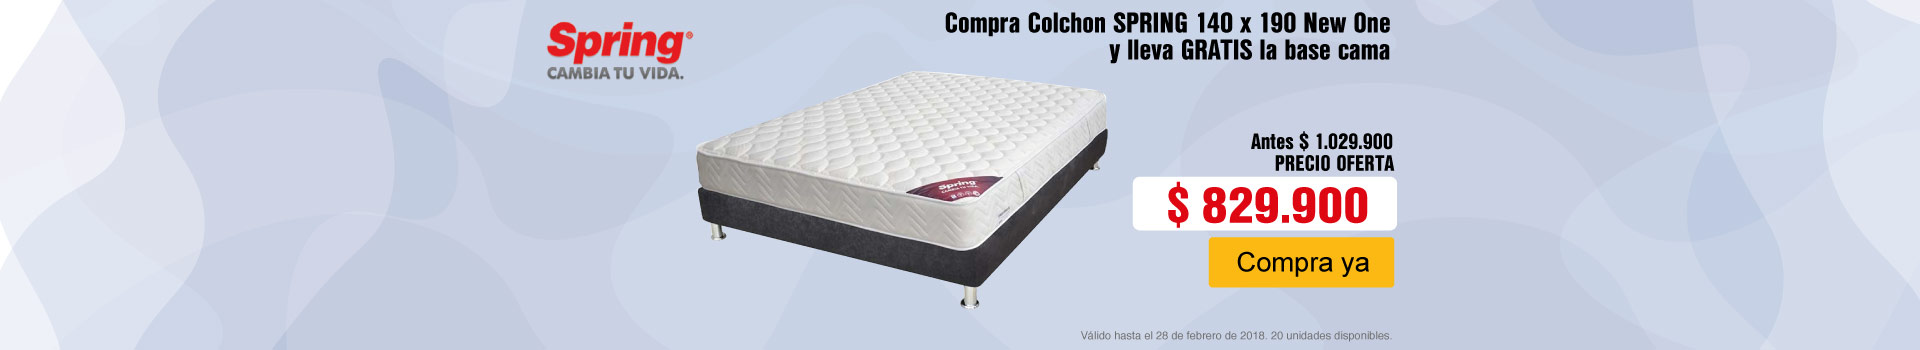 CAT AK-3-colchones-colchon-doble-new-one-base-cama-decco-spring-feb21-23